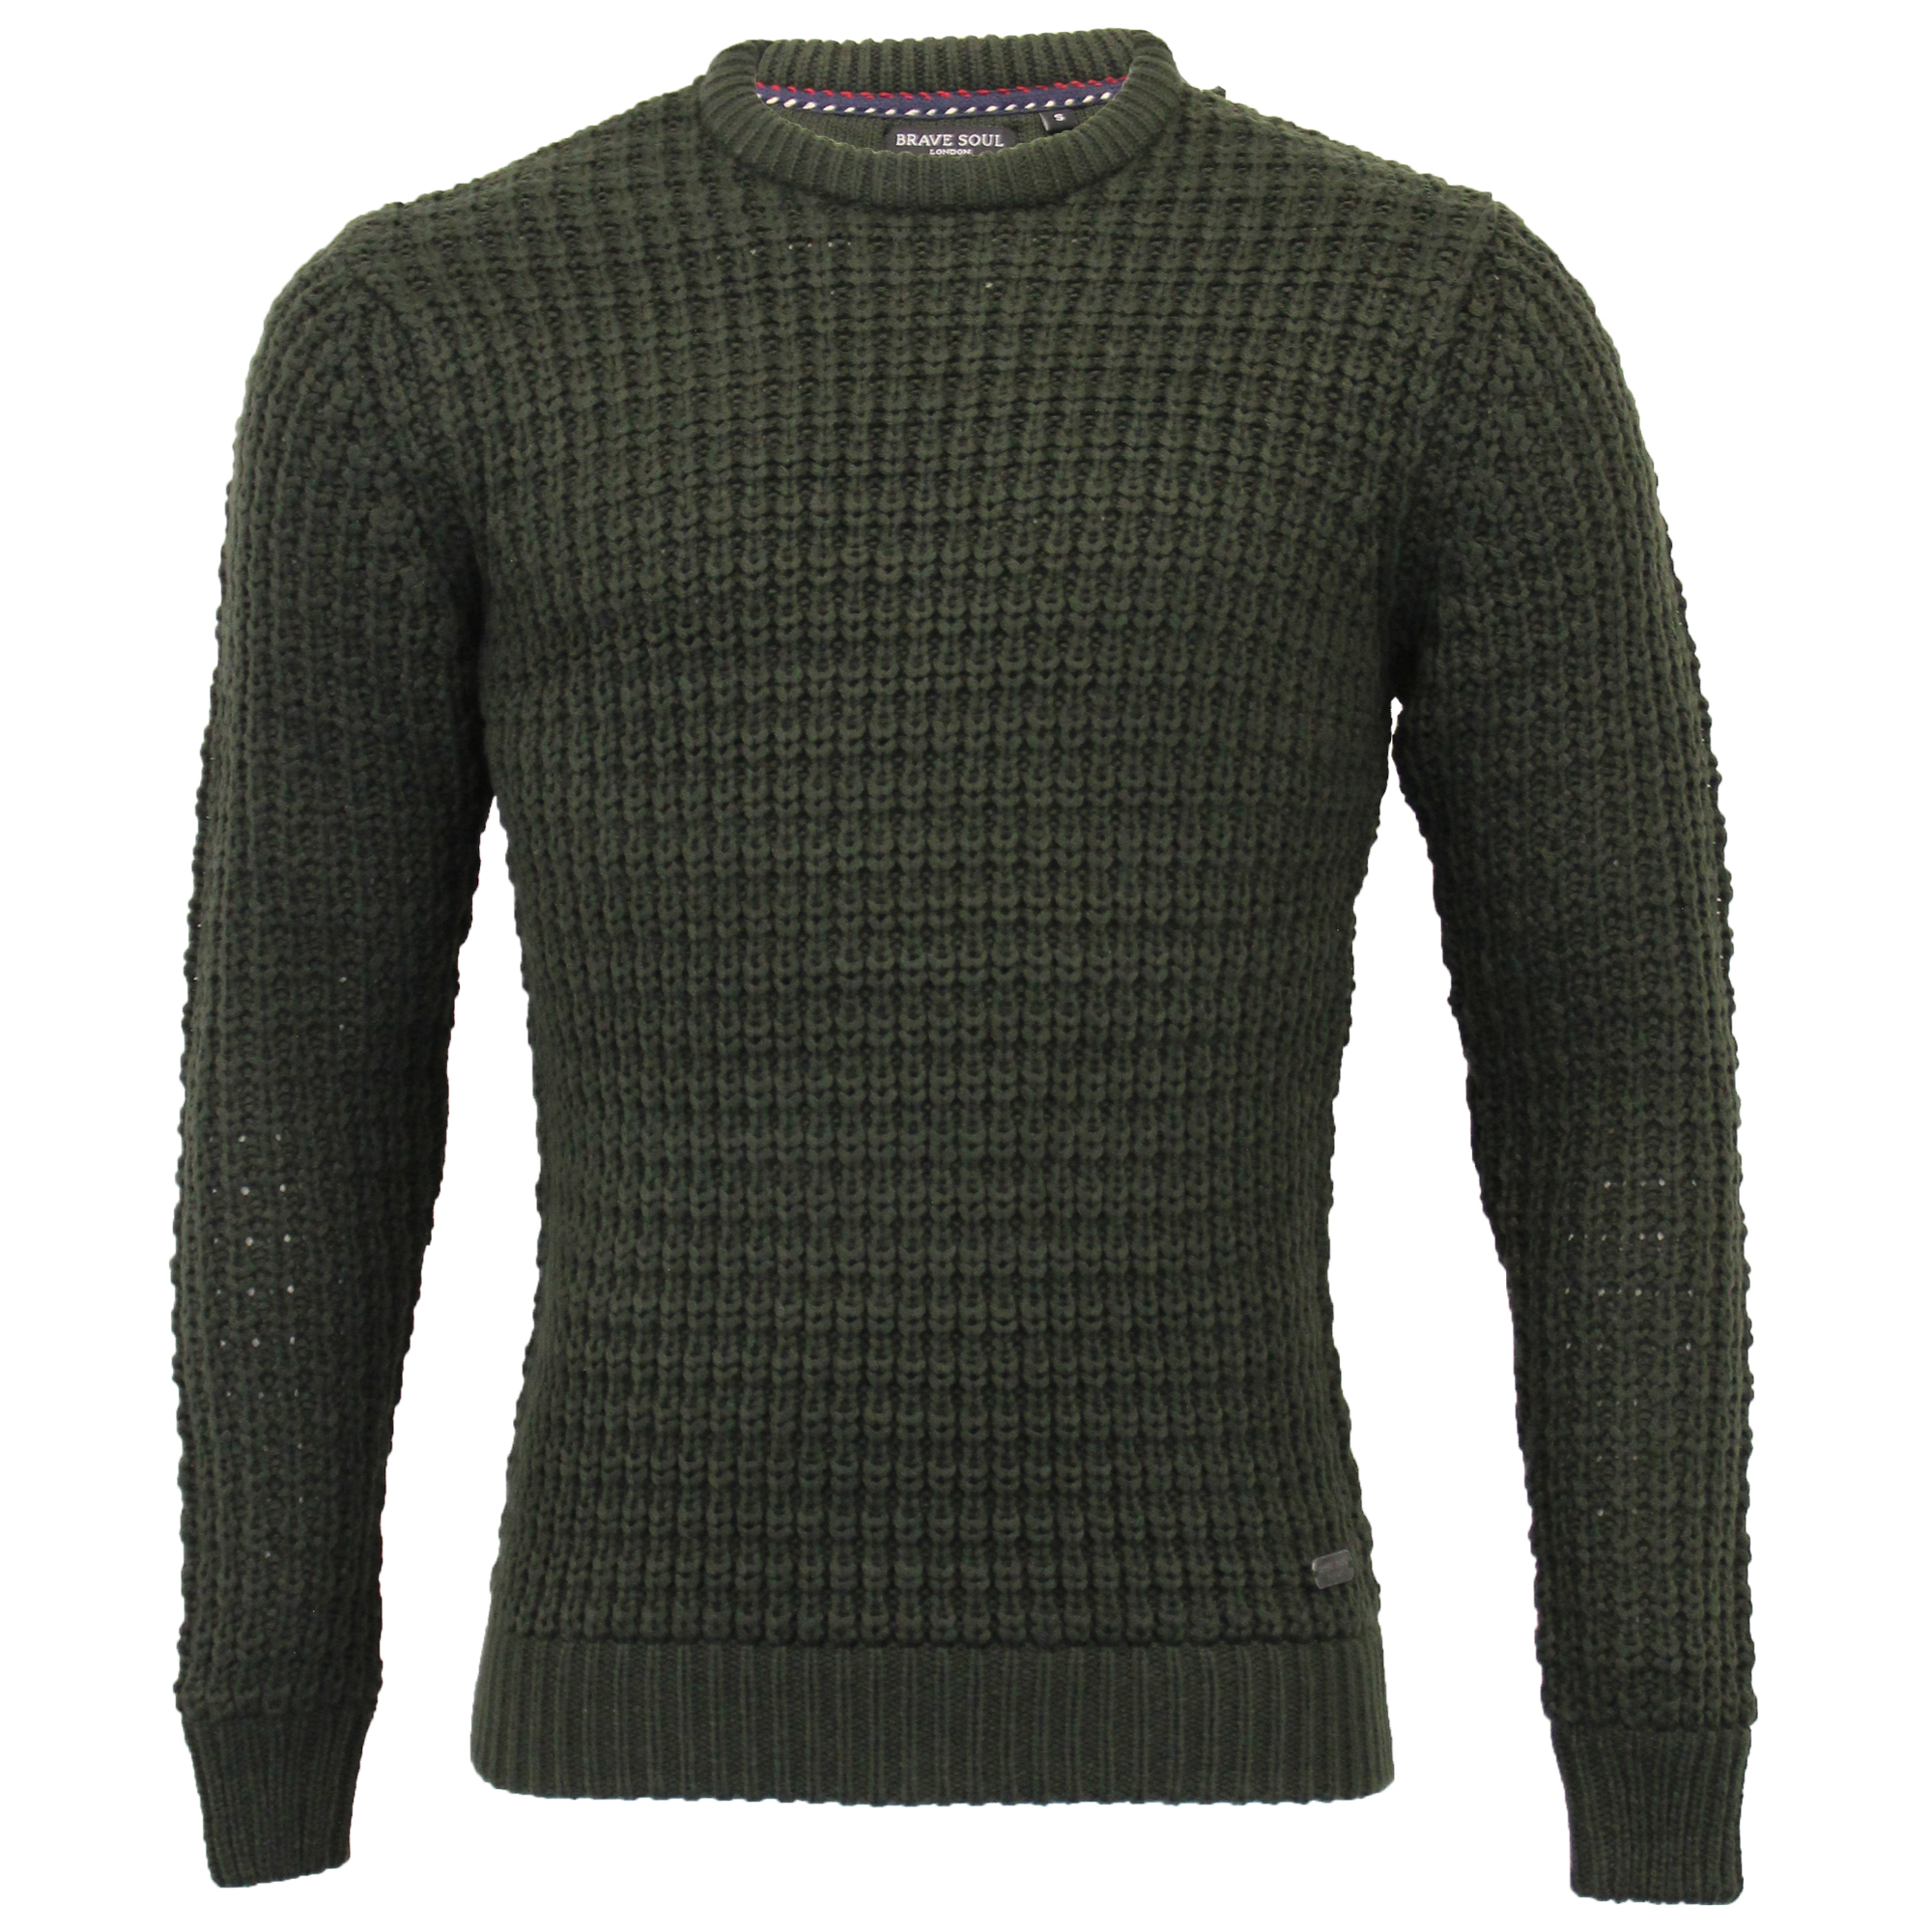 Mens-Cable-Knitted-Jumper-Brave-Soul-DIRAC-Crew-Neck-Pullover-Top-Winter-Fashion thumbnail 8